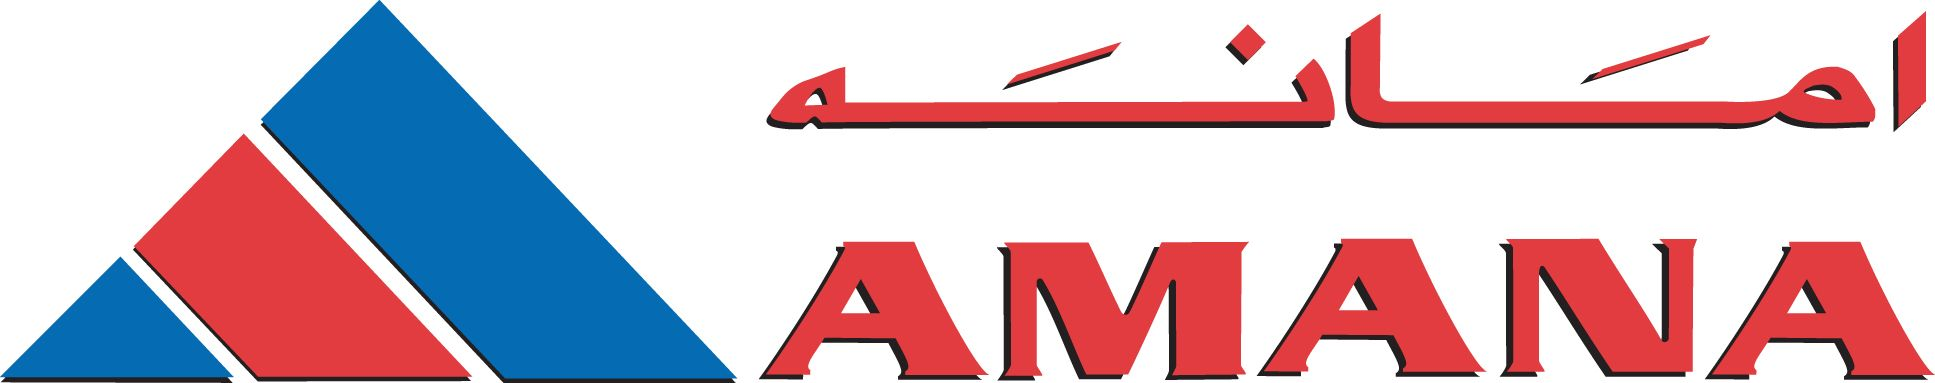 Amana Logo - Amana Contracting & Steel Buildings - Industrial Contractor